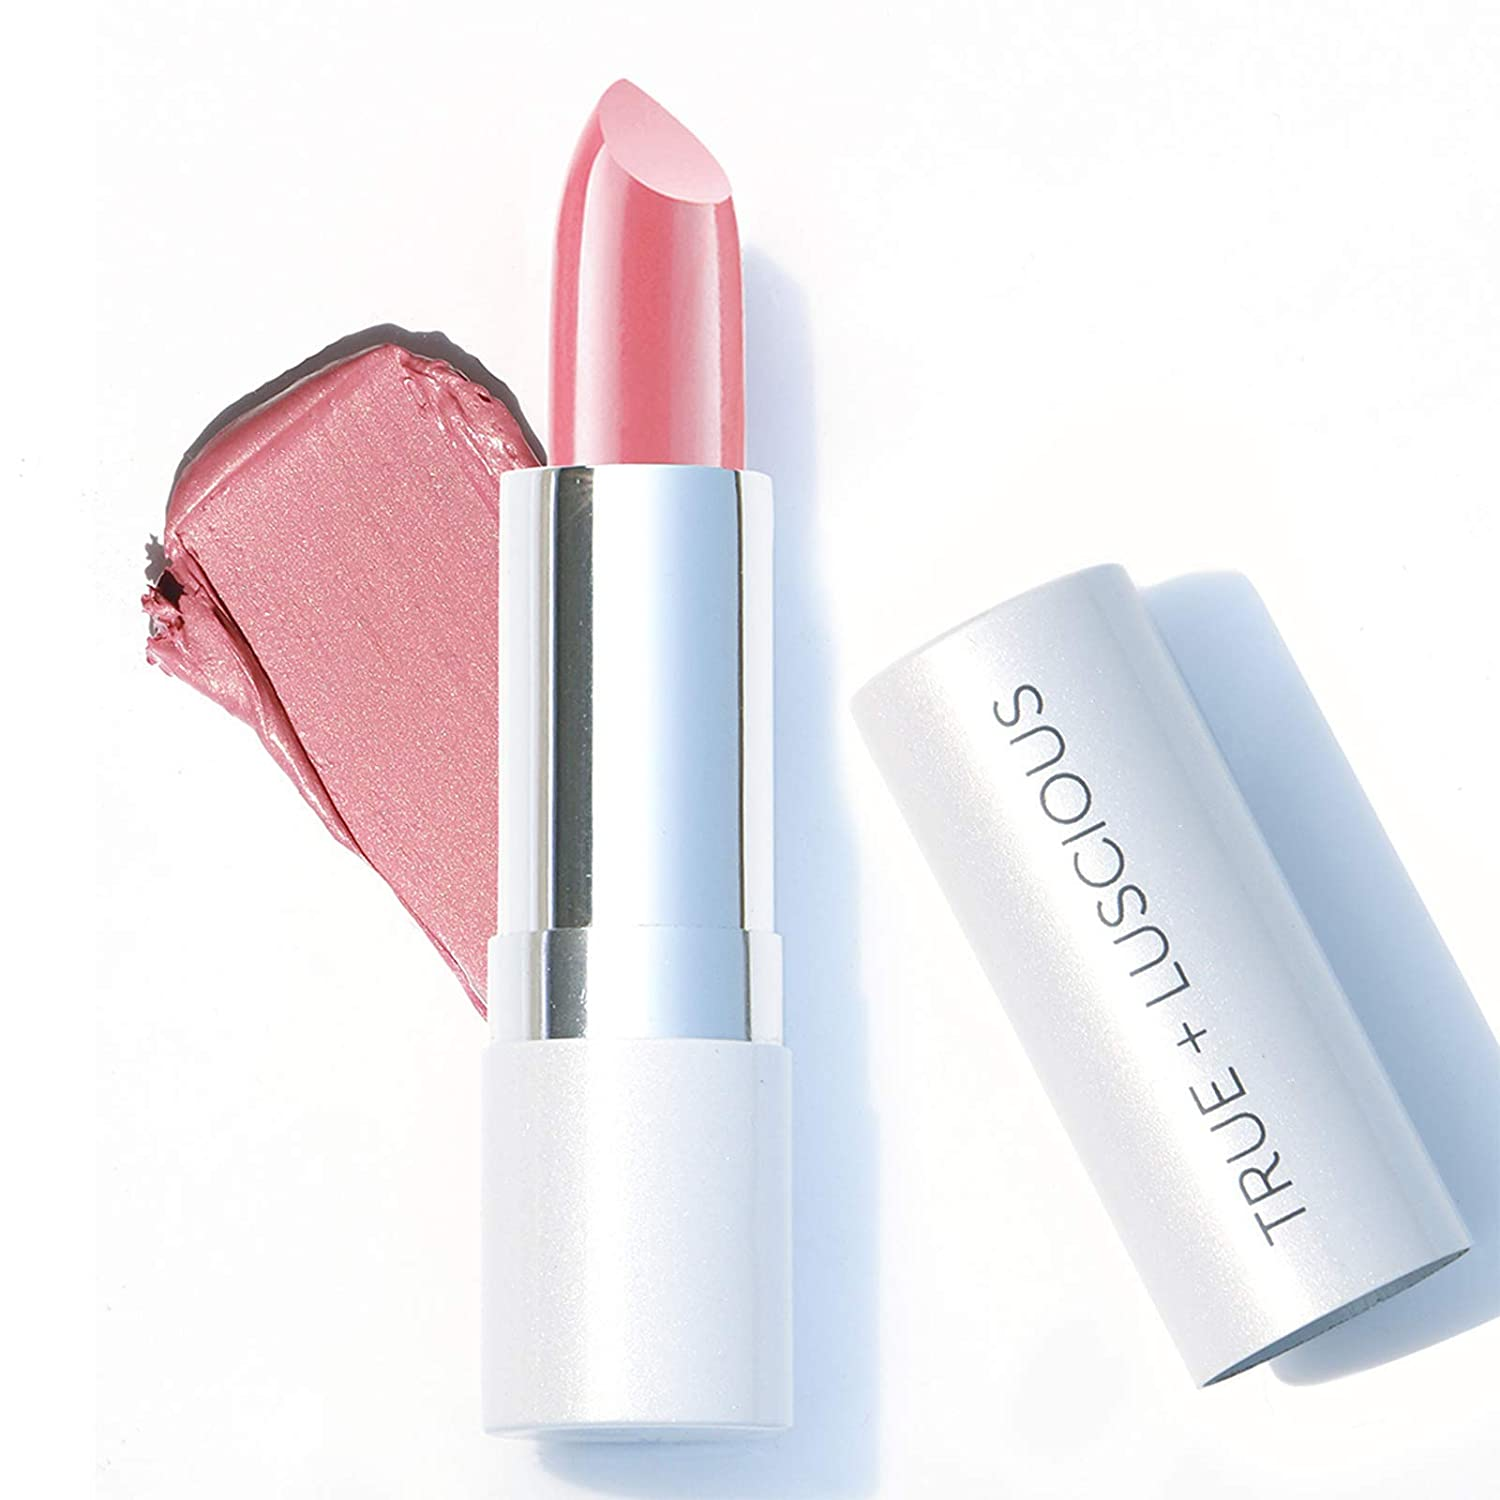 Super Moisture Lipstick by True + Luscious - Clean Formula, Smooth and Hydrating - Vegan and Cruelty Free Lipstick, Non Toxic and Lead Free Shade: Pink Sugar - 0.12 oz